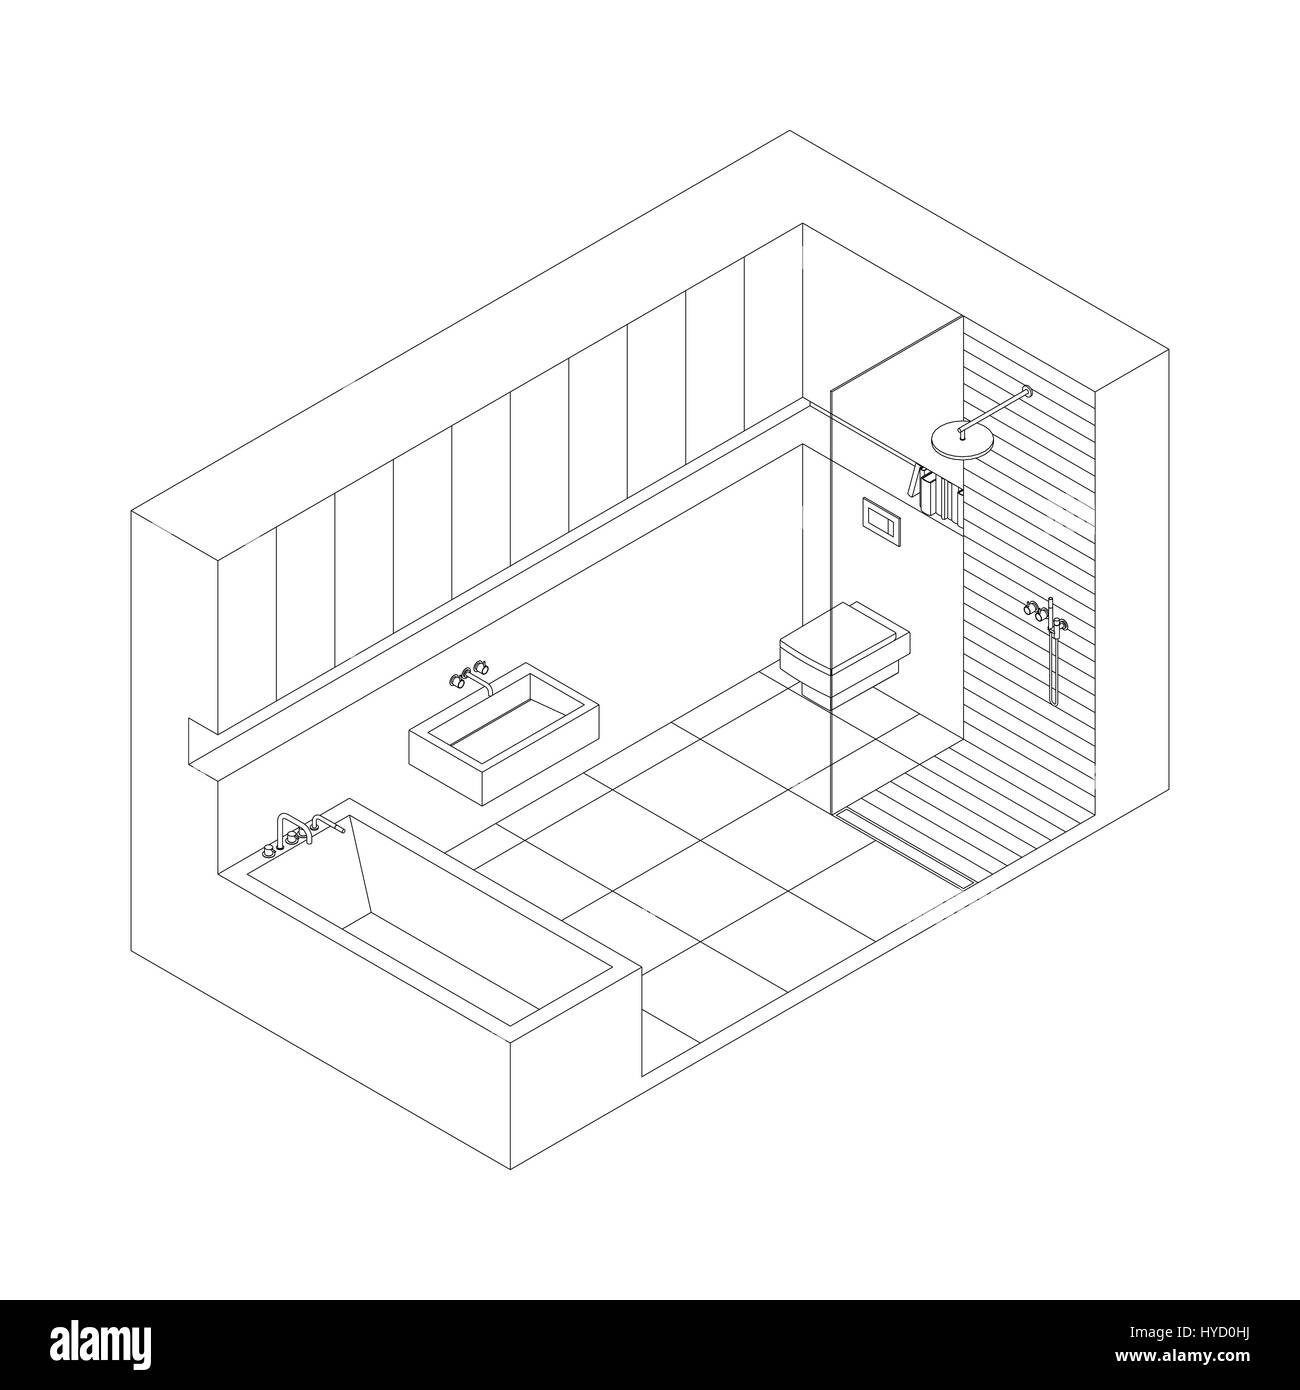 Line Drawing Of The Interior Of Bathroom Isometric View Stock - Drawing of bathroom